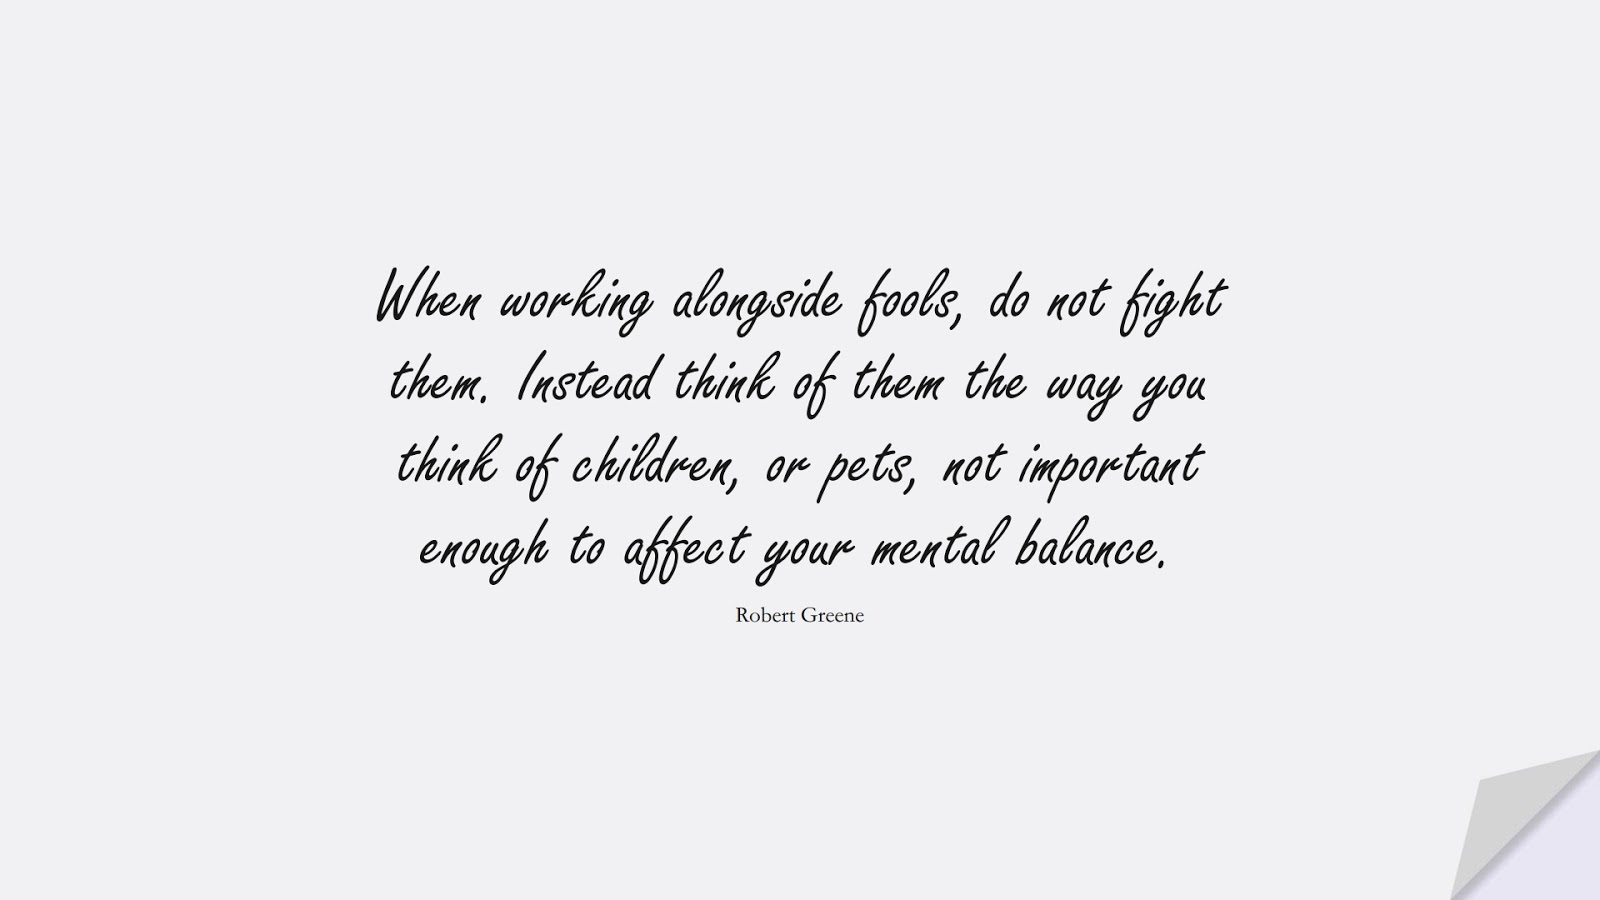 When working alongside fools, do not fight them. Instead think of them the way you think of children, or pets, not important enough to affect your mental balance. (Robert Greene);  #CalmQuotes